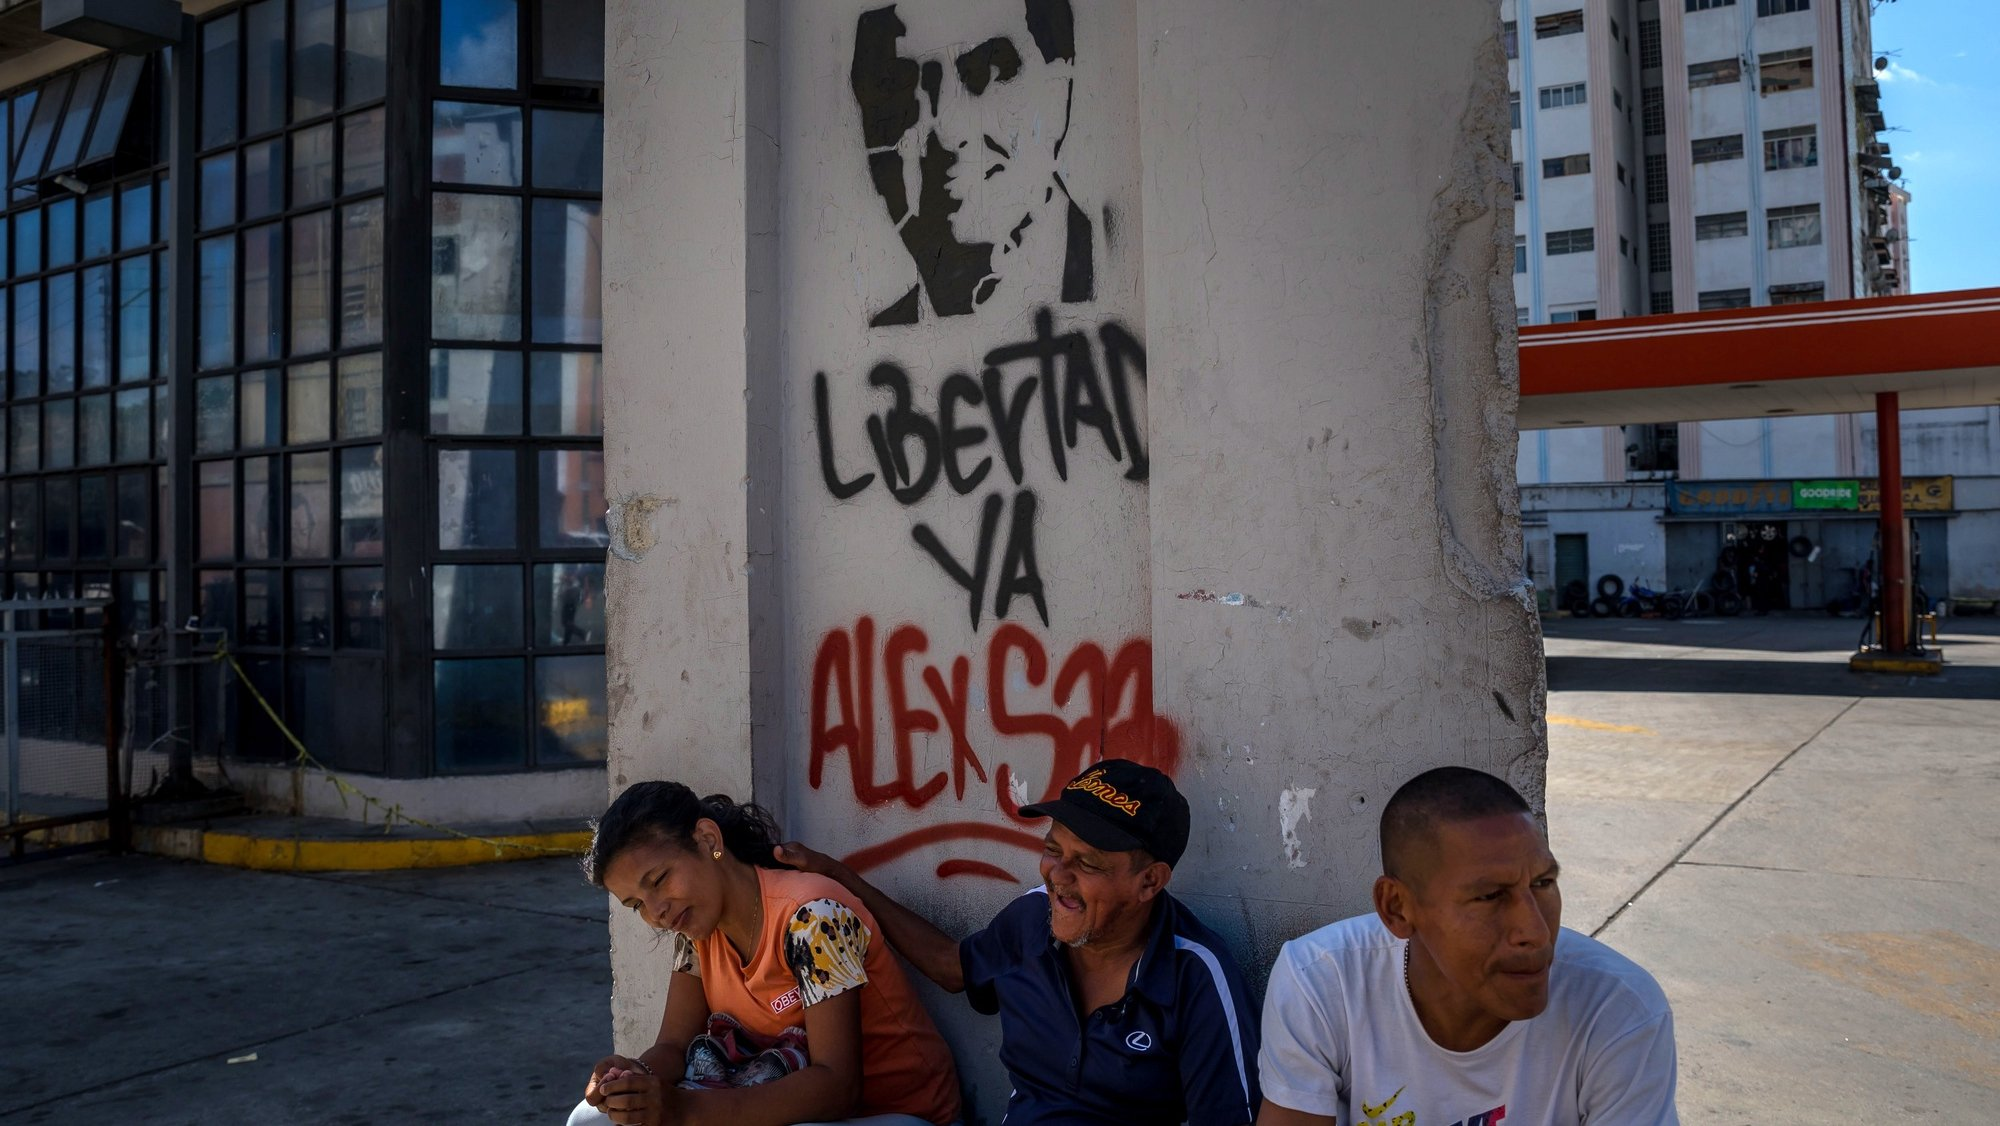 epa08990282 Several people is sitting next to a wall with graffiti demanding the release of Alex Saab, in Caracas, Venezuela, 05 February 2021. The Court of Justice of the Economic Community of West African States (ECOWAS) held on 05 February a hearing on the extradition case of Álex Saab, alleged front man of the President of Venezuela, Nicolás Maduro, arrested in Cape Verde and claimed by the US for alleged money laundering.  EPA/MIGUEL GUTIERREZ